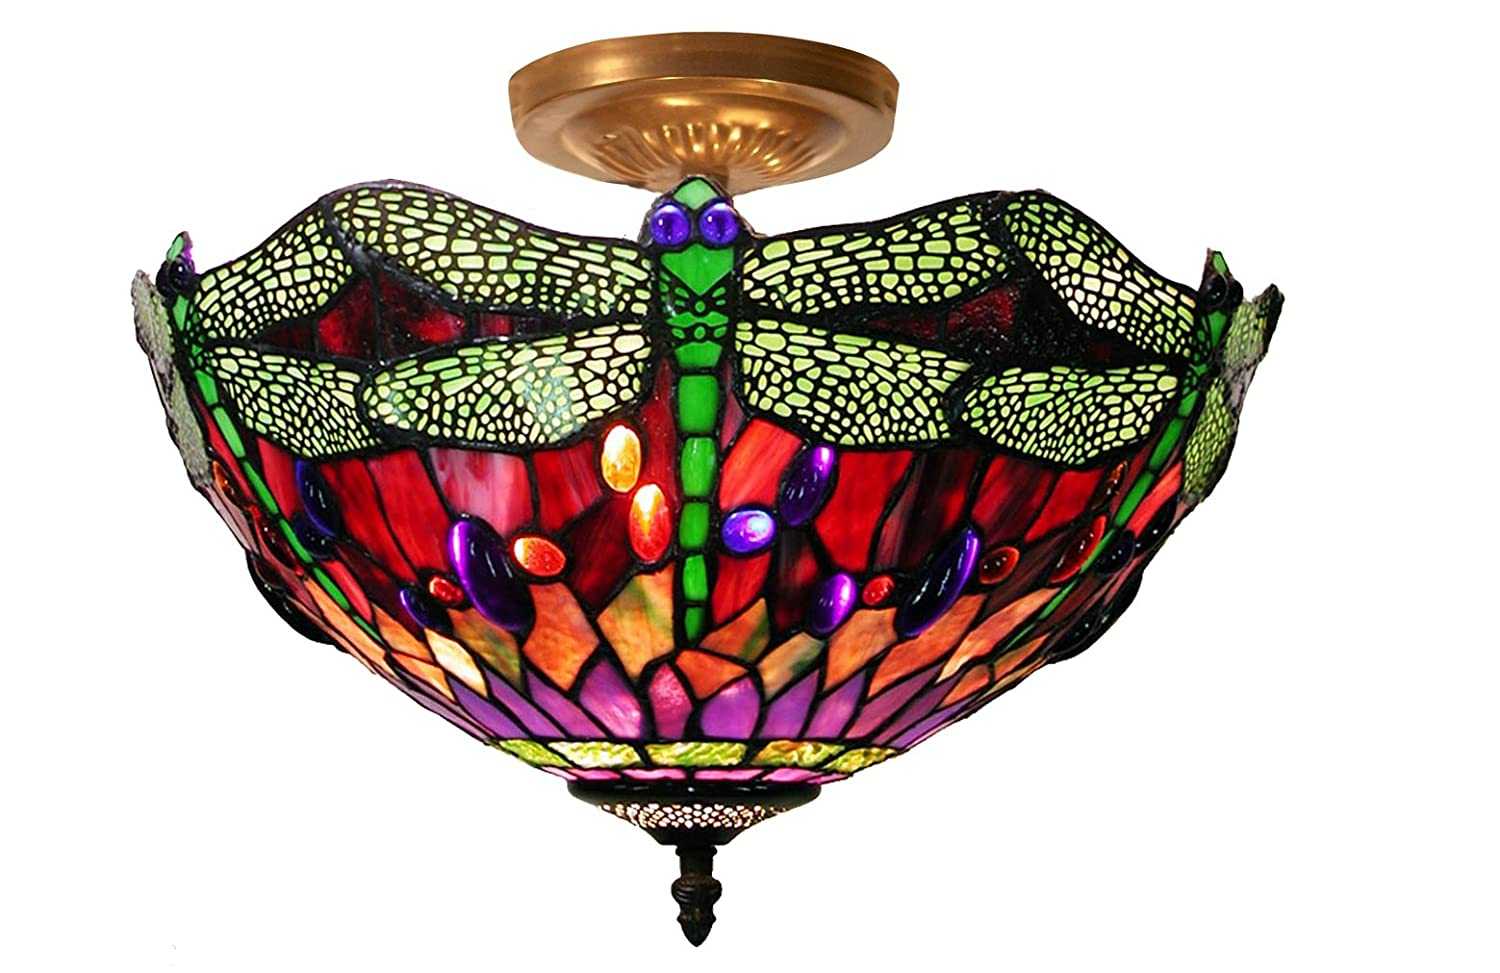 Tiffany style dragonfly ceiling lamp table lamps amazon aloadofball Image collections